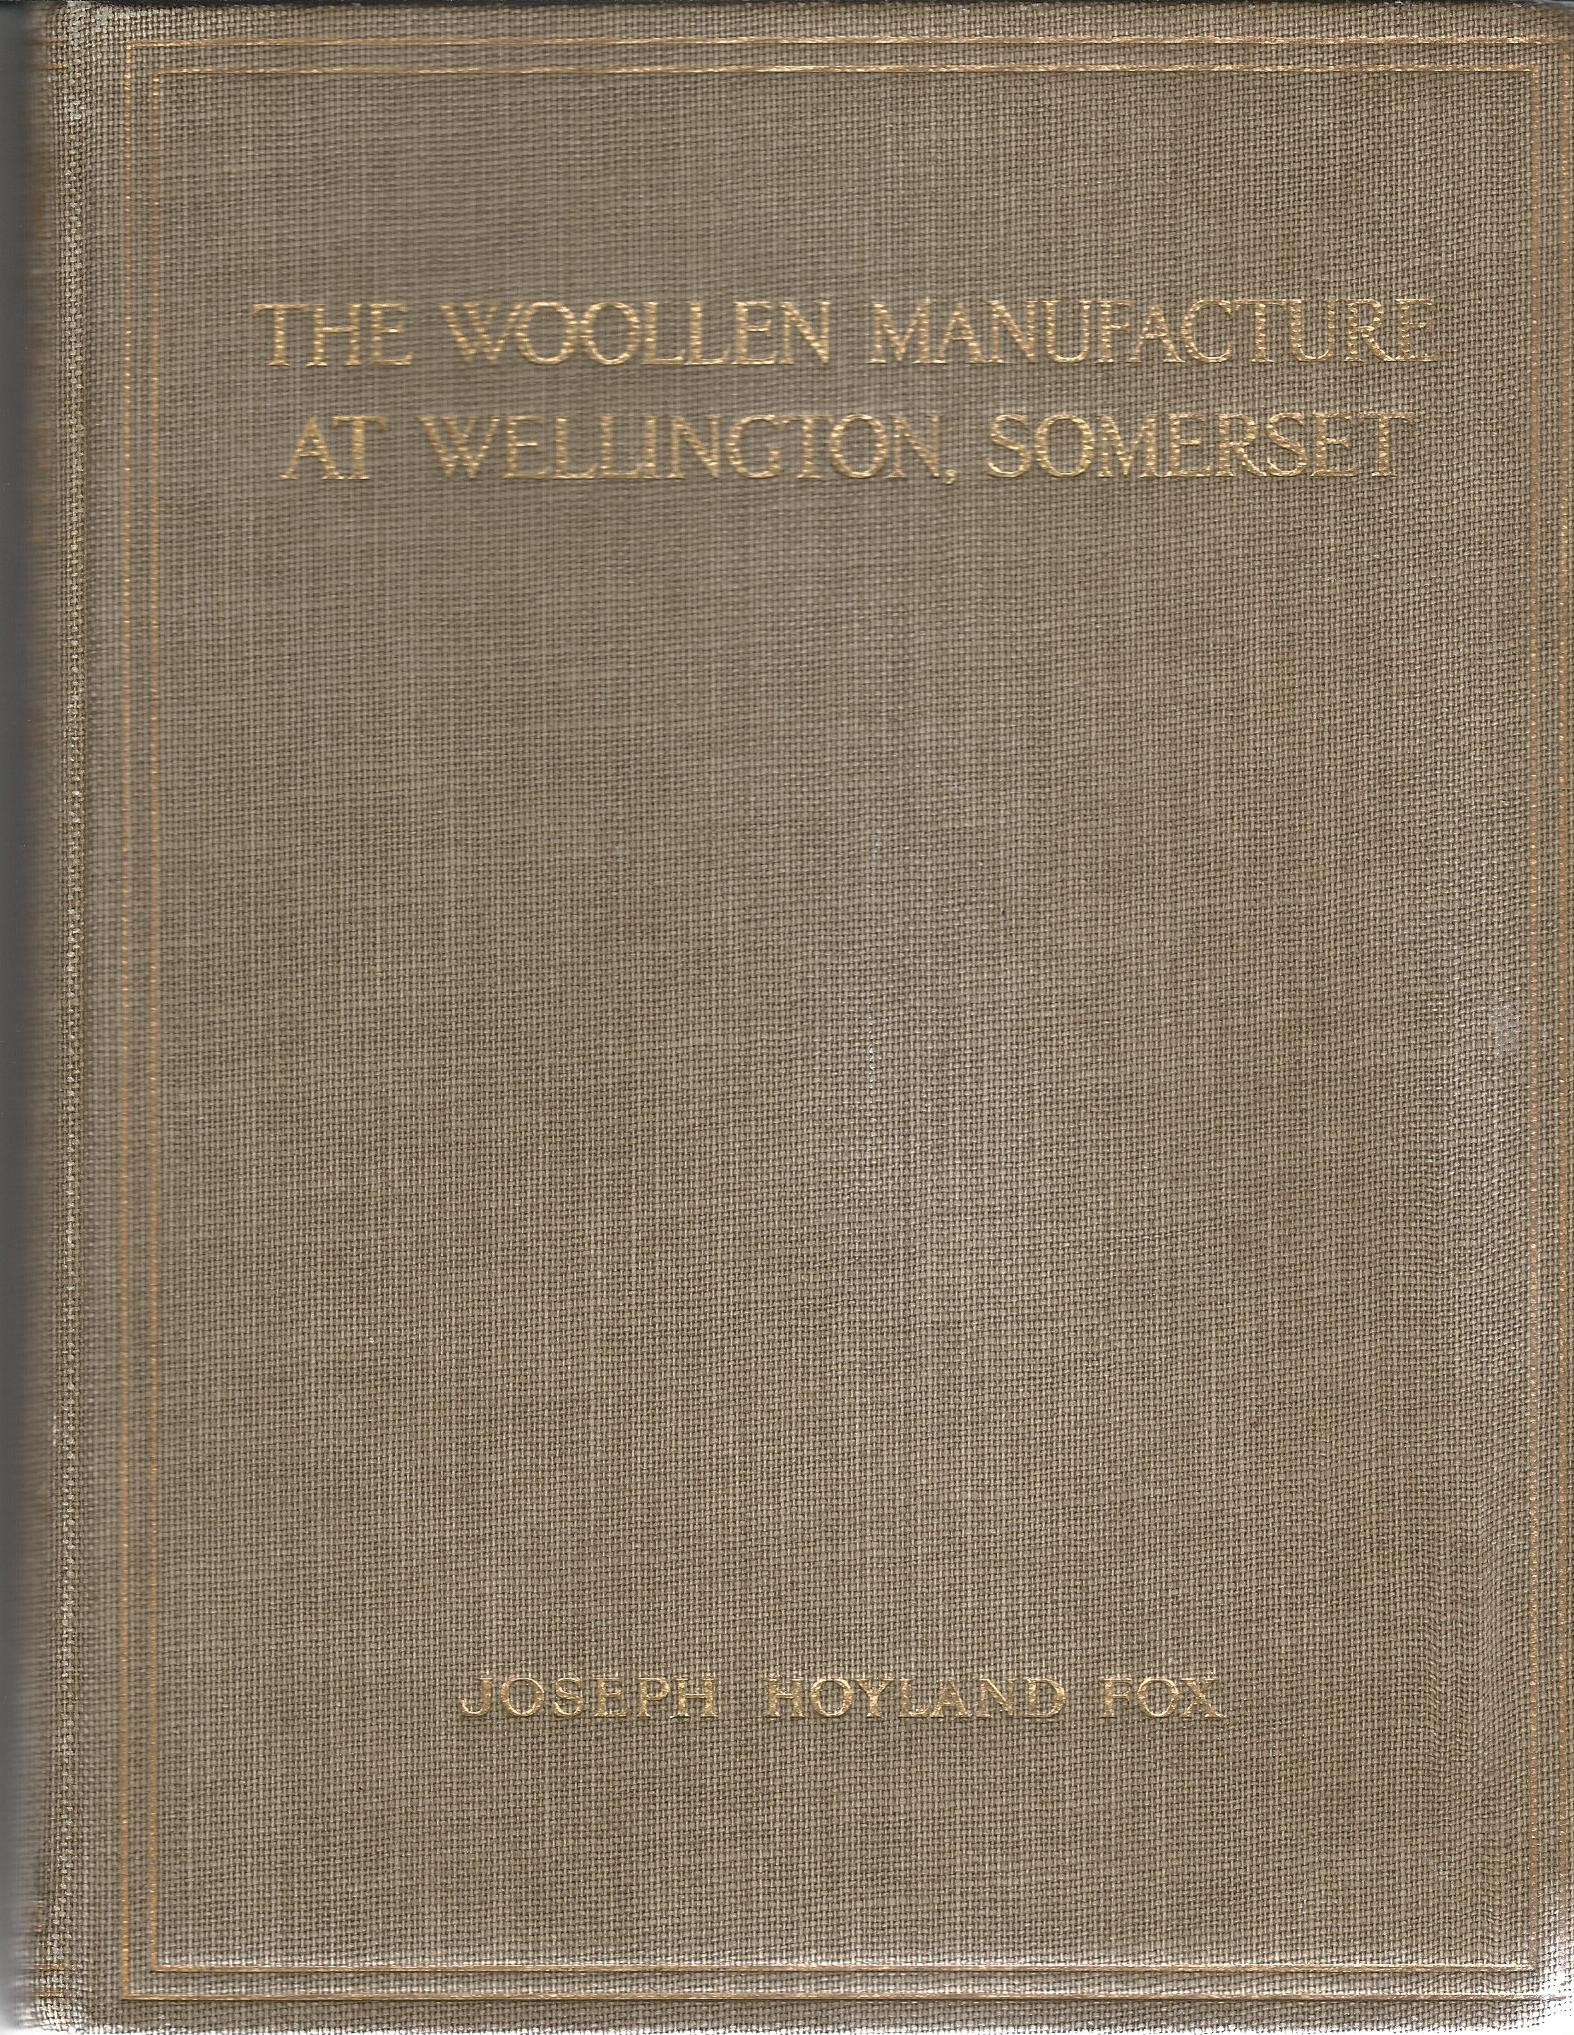 Image for The Woollen Manufacture at Wellington, Somerset.